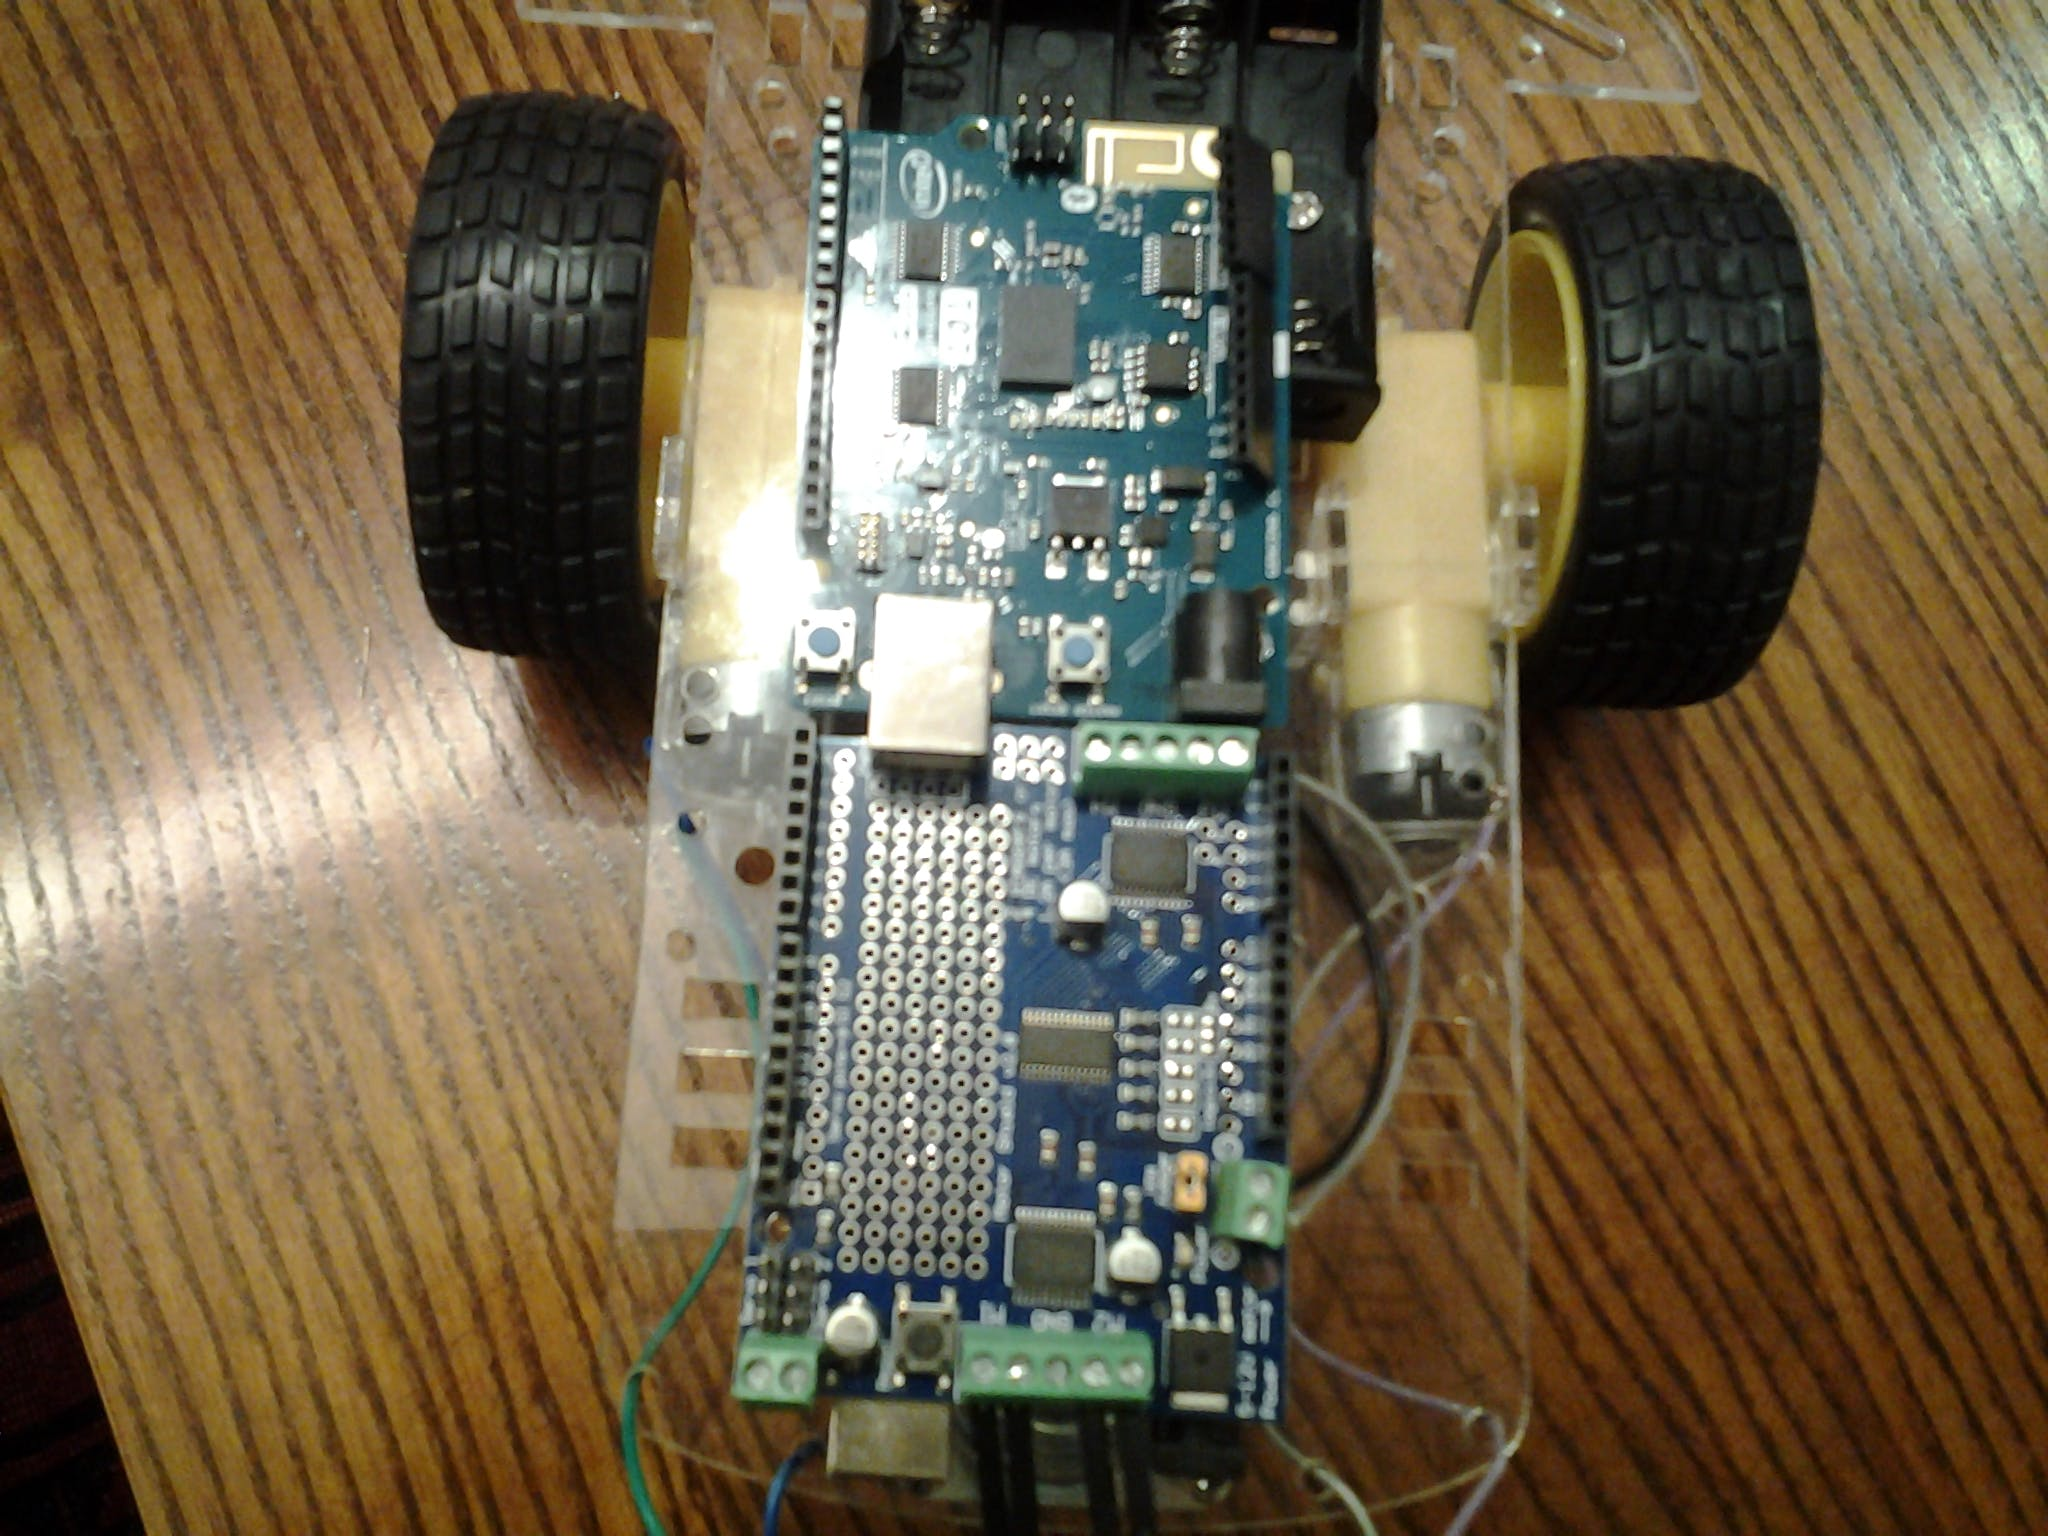 Arduino 101 Powered Car Robot. There was an attepmted to controll one of them over the cloud using ThingSpeak, Blynk or other IoT ploatforms that were discussed during idea pitches